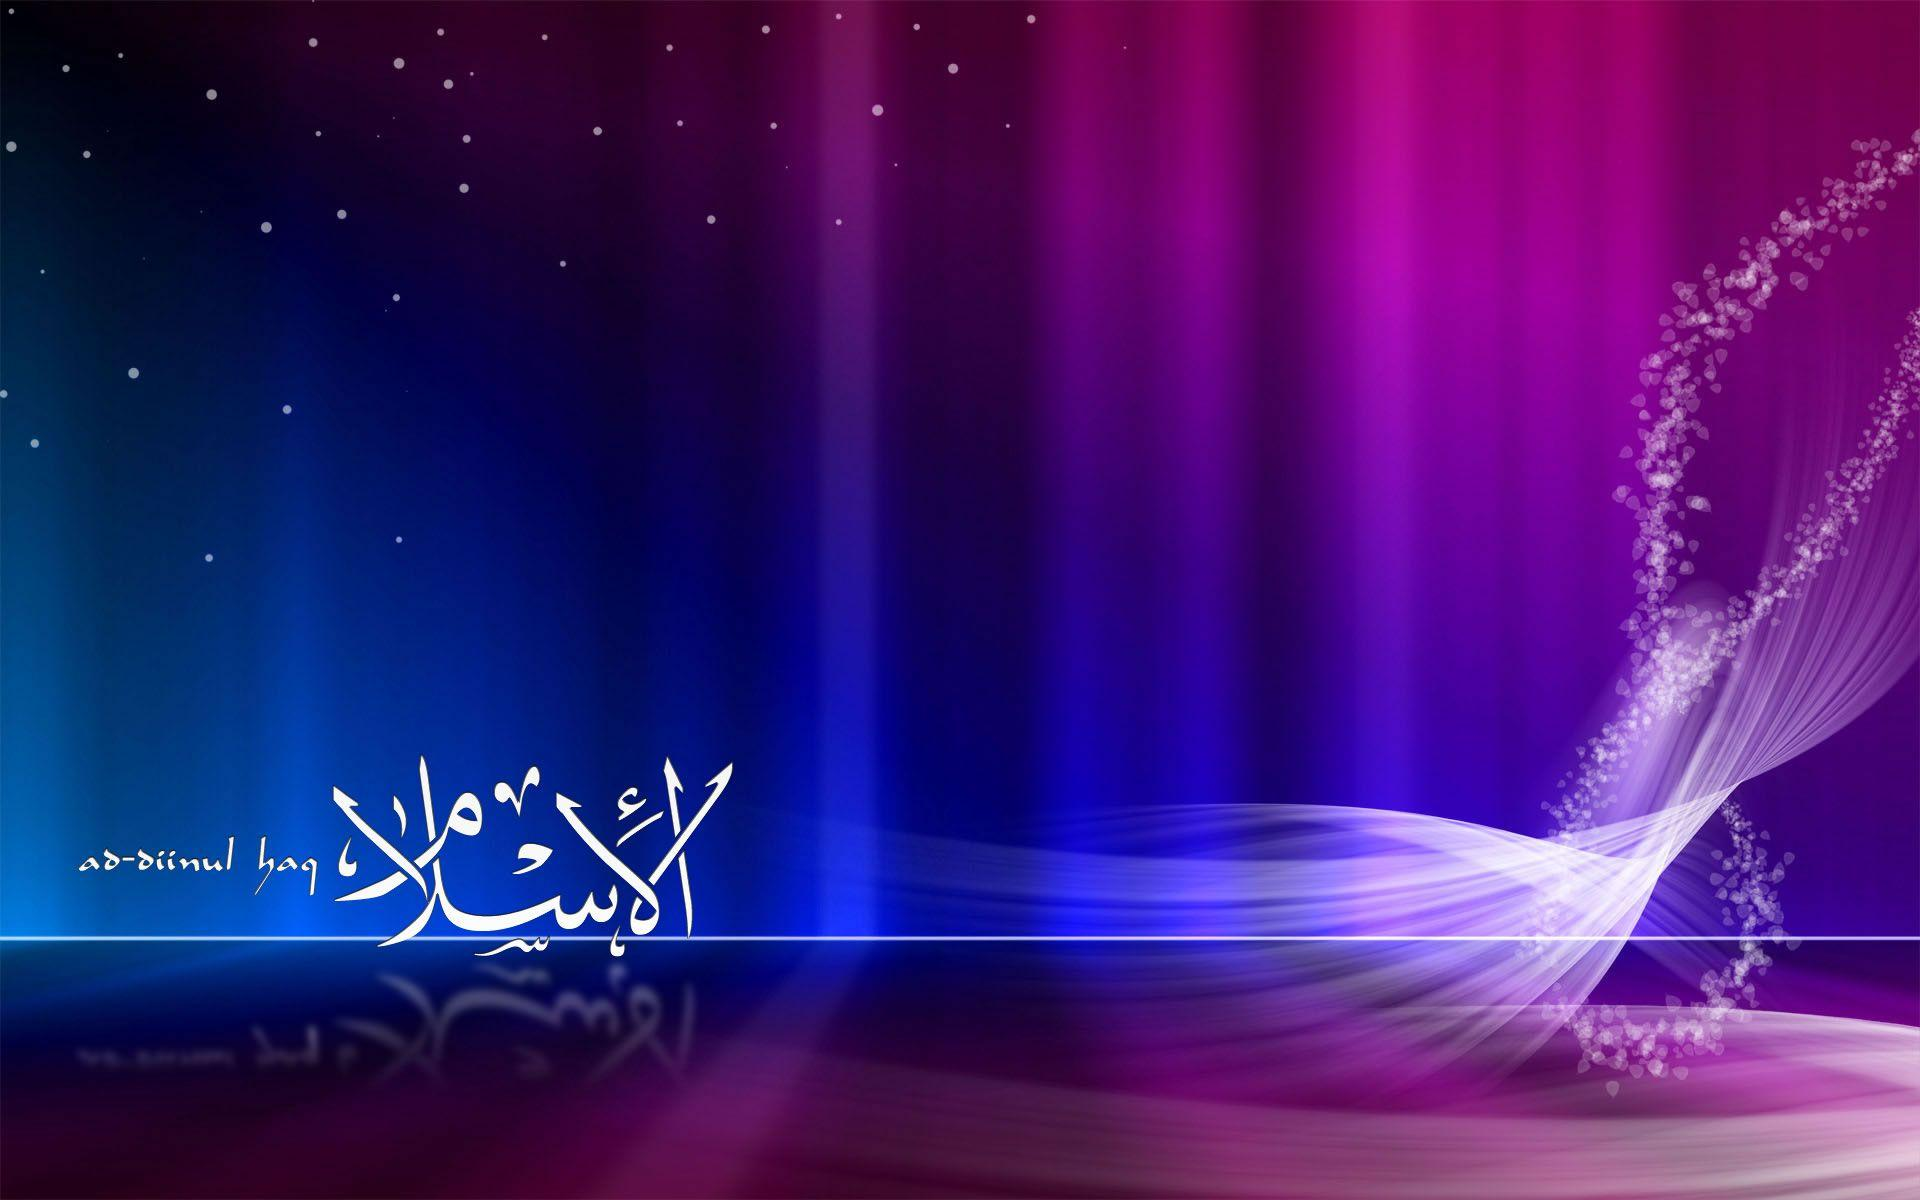 Islamic Desktop Wallpapers  Wallpaper Cave